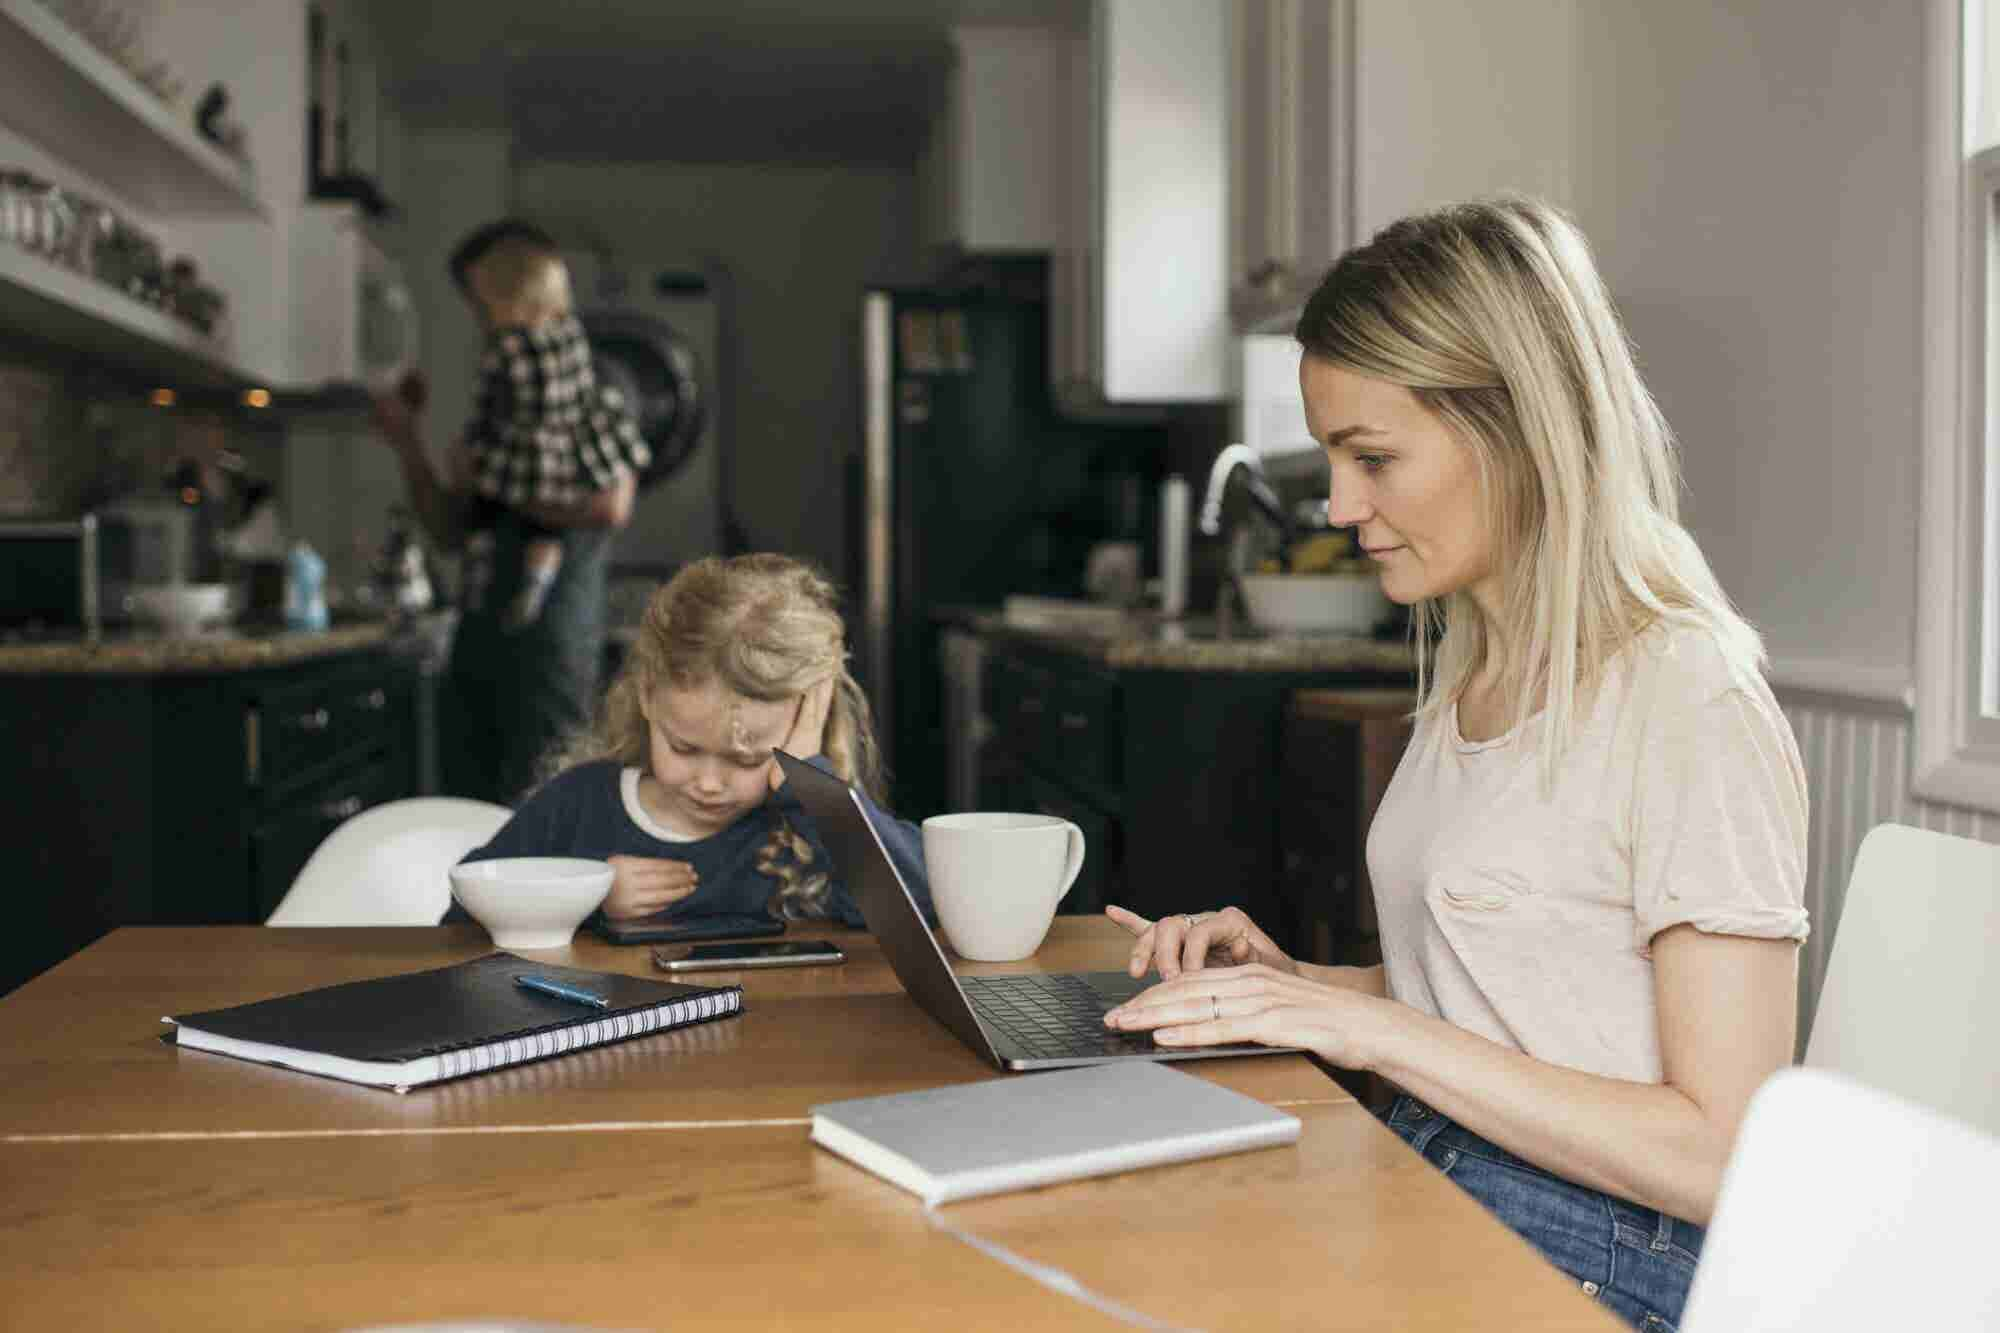 Your Company (Not to Mention Your Family) Needs You to Stop Taking Work Home